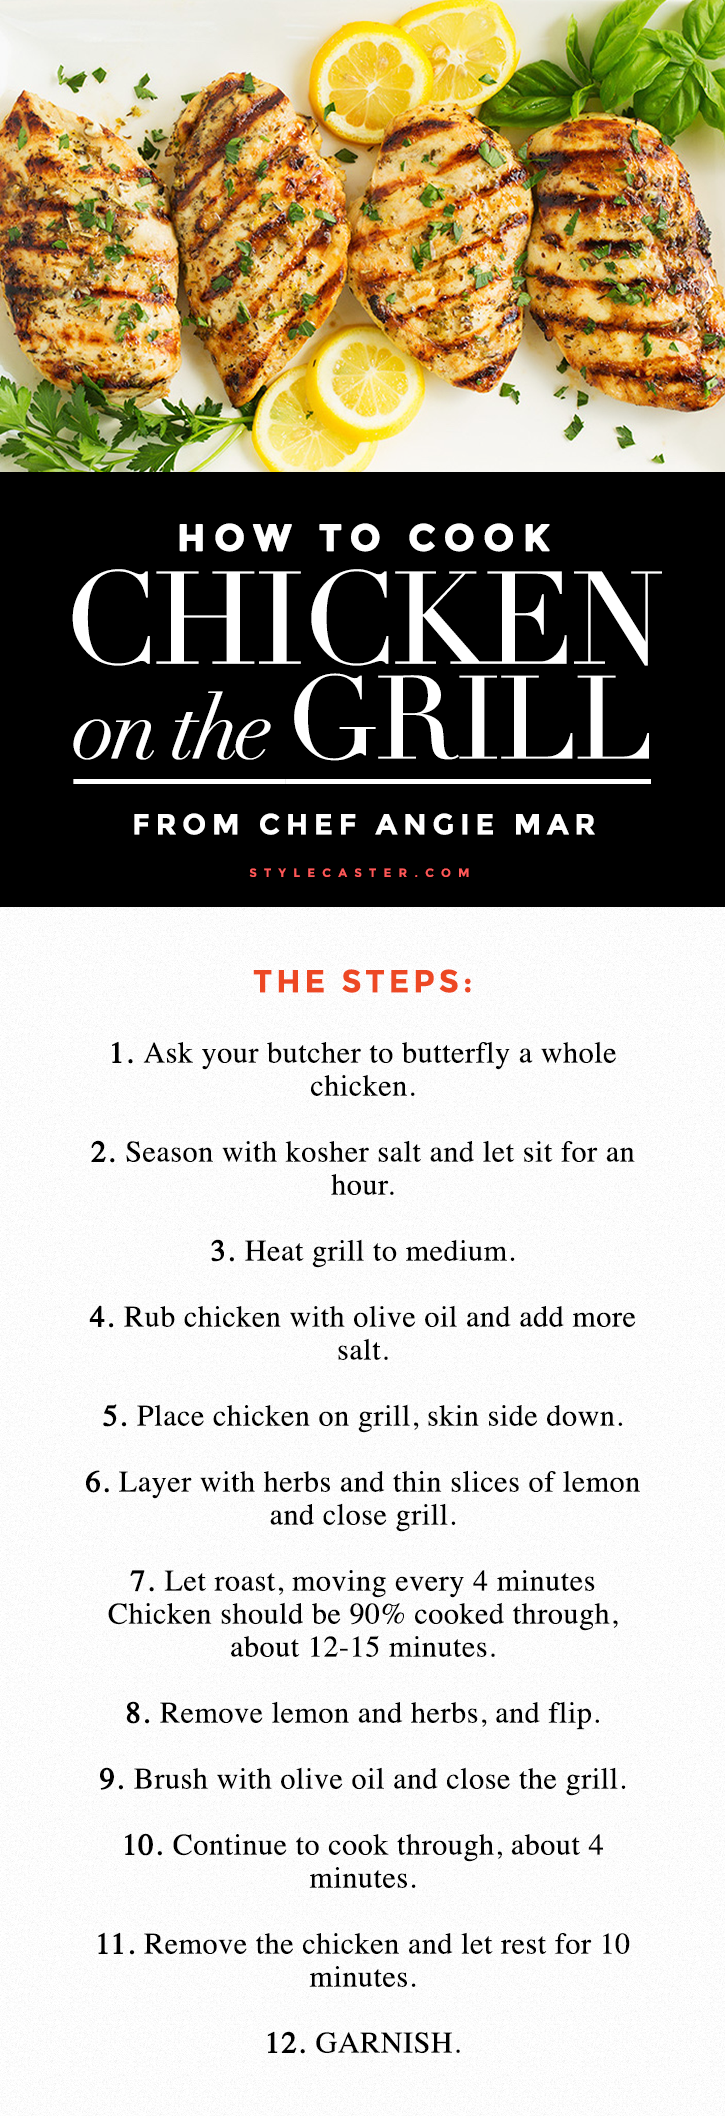 how-to-cook-chicken-on-the-grill (2)